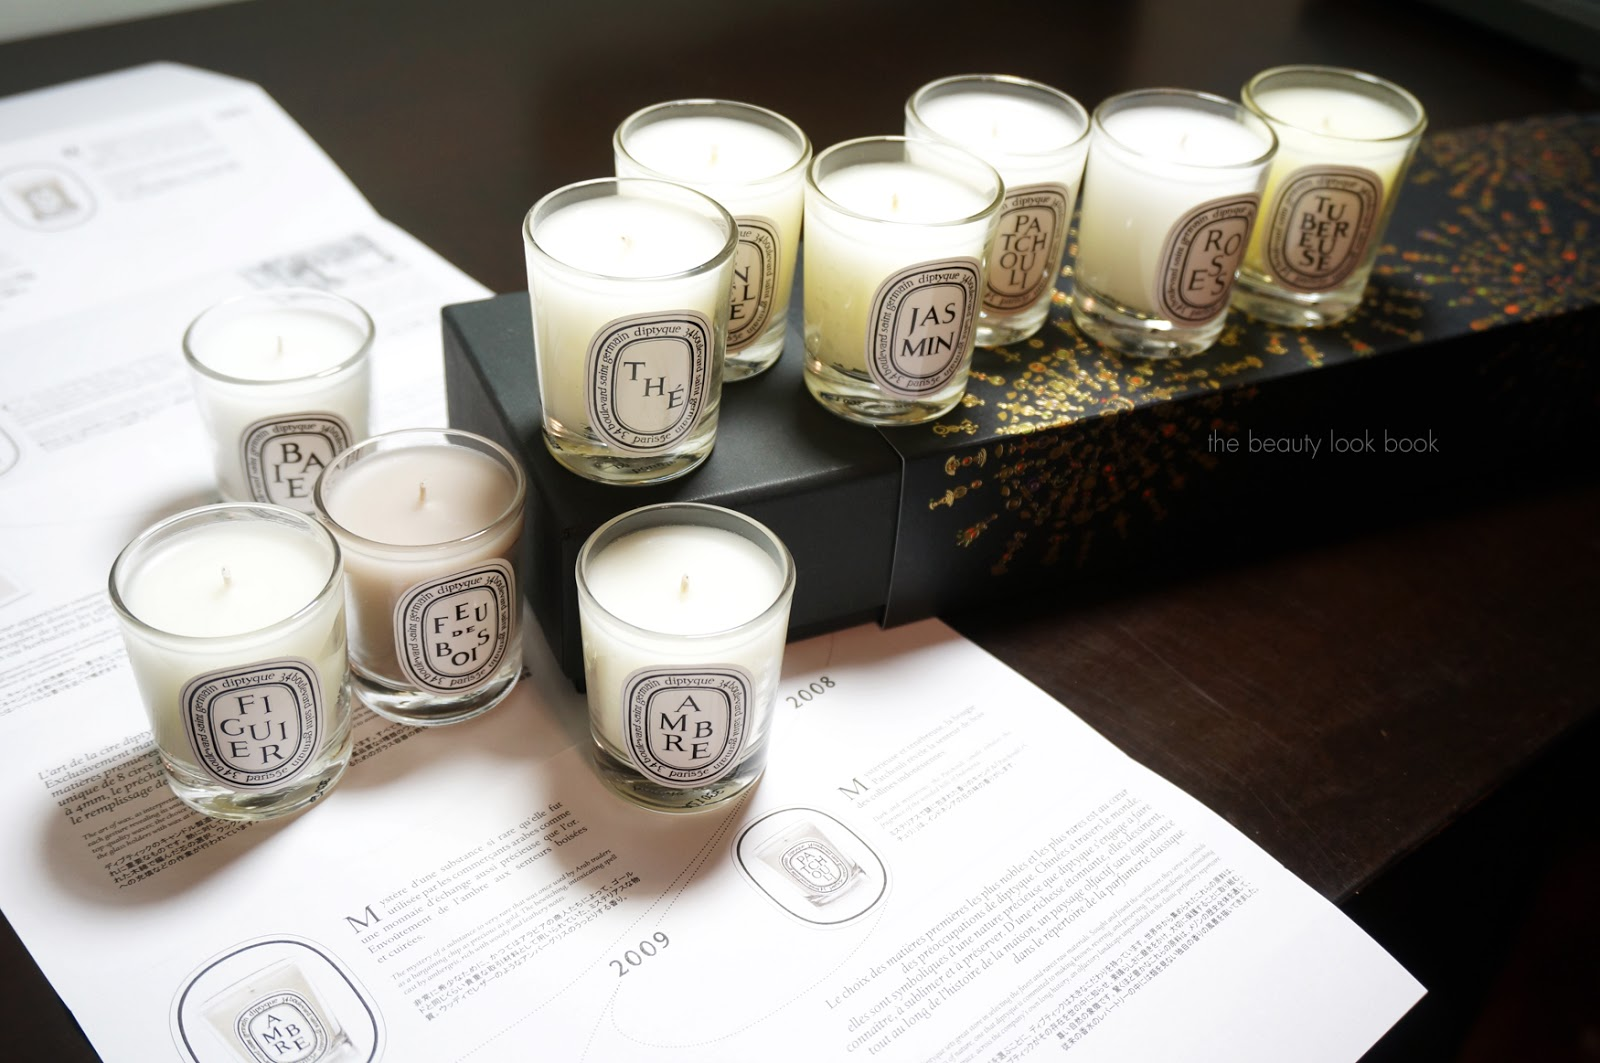 Diptyque Candle Set x20   Nordstrom Exclusive   The Beauty Look Book